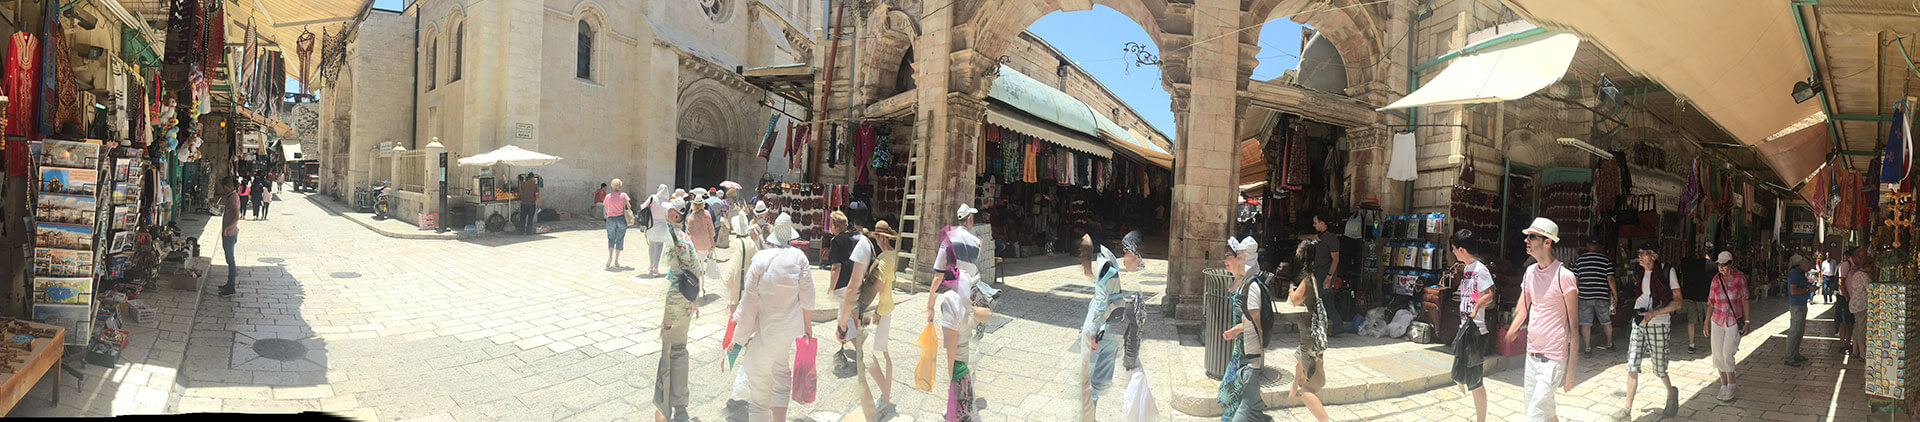 Old City market, Jerusalem.